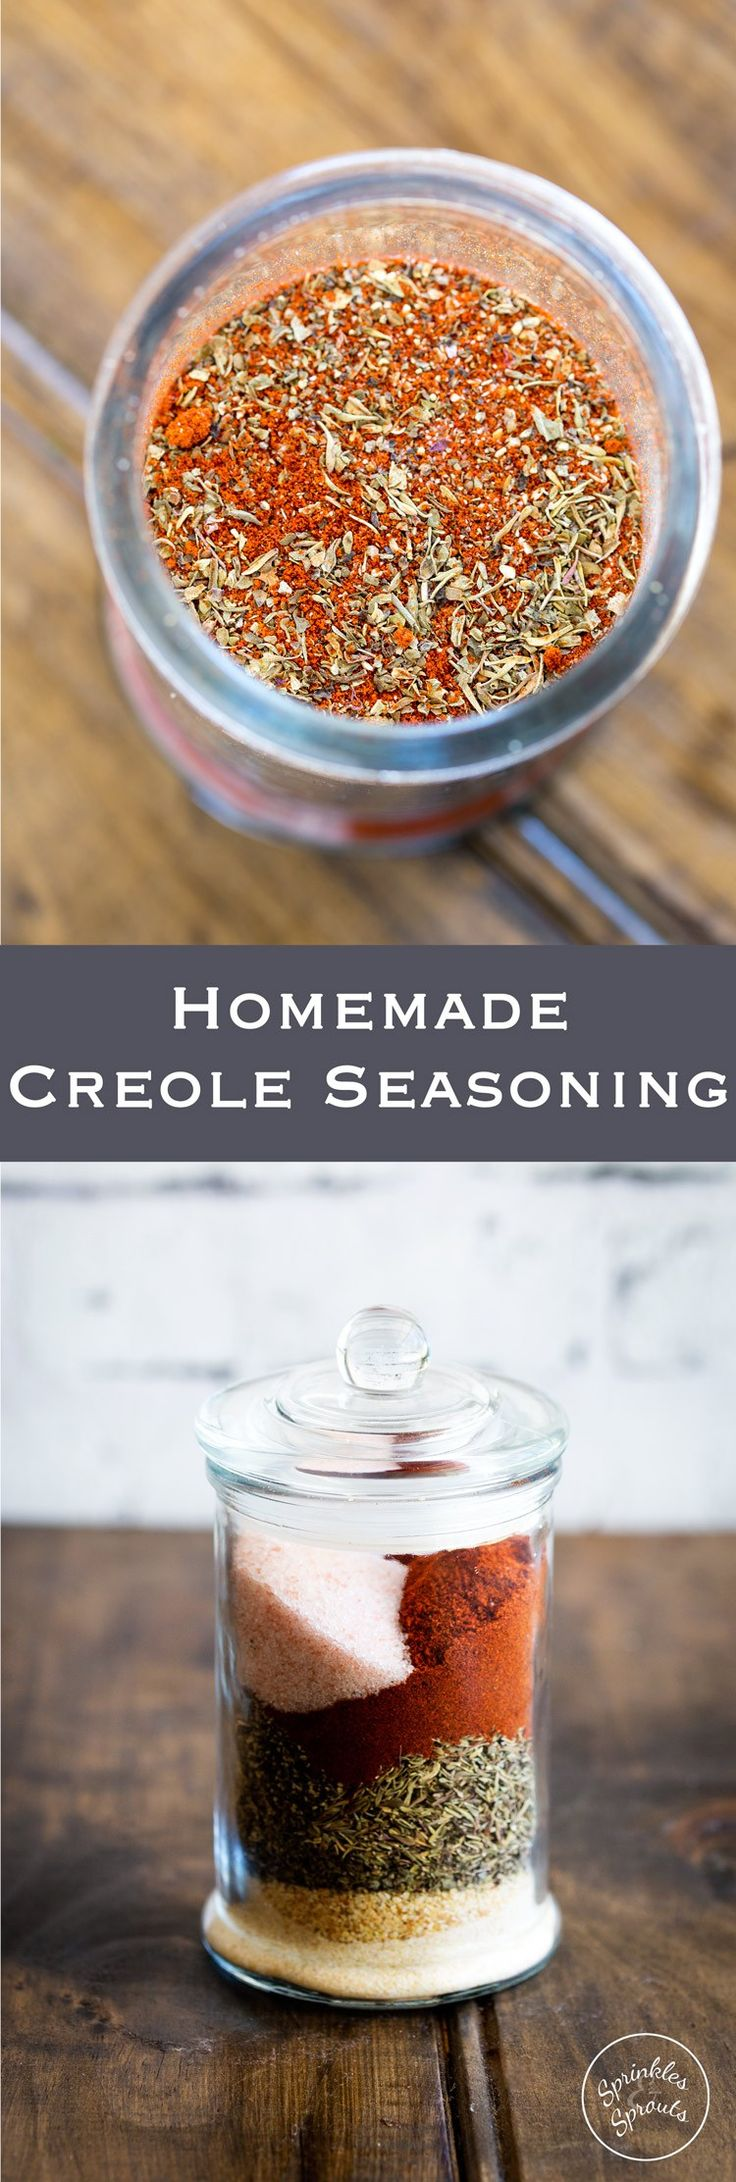 This Creole Seasoning is a wonderful blend of spices that could only come from New Orleans!! Added 1/2 tsp each sage and ground mustard